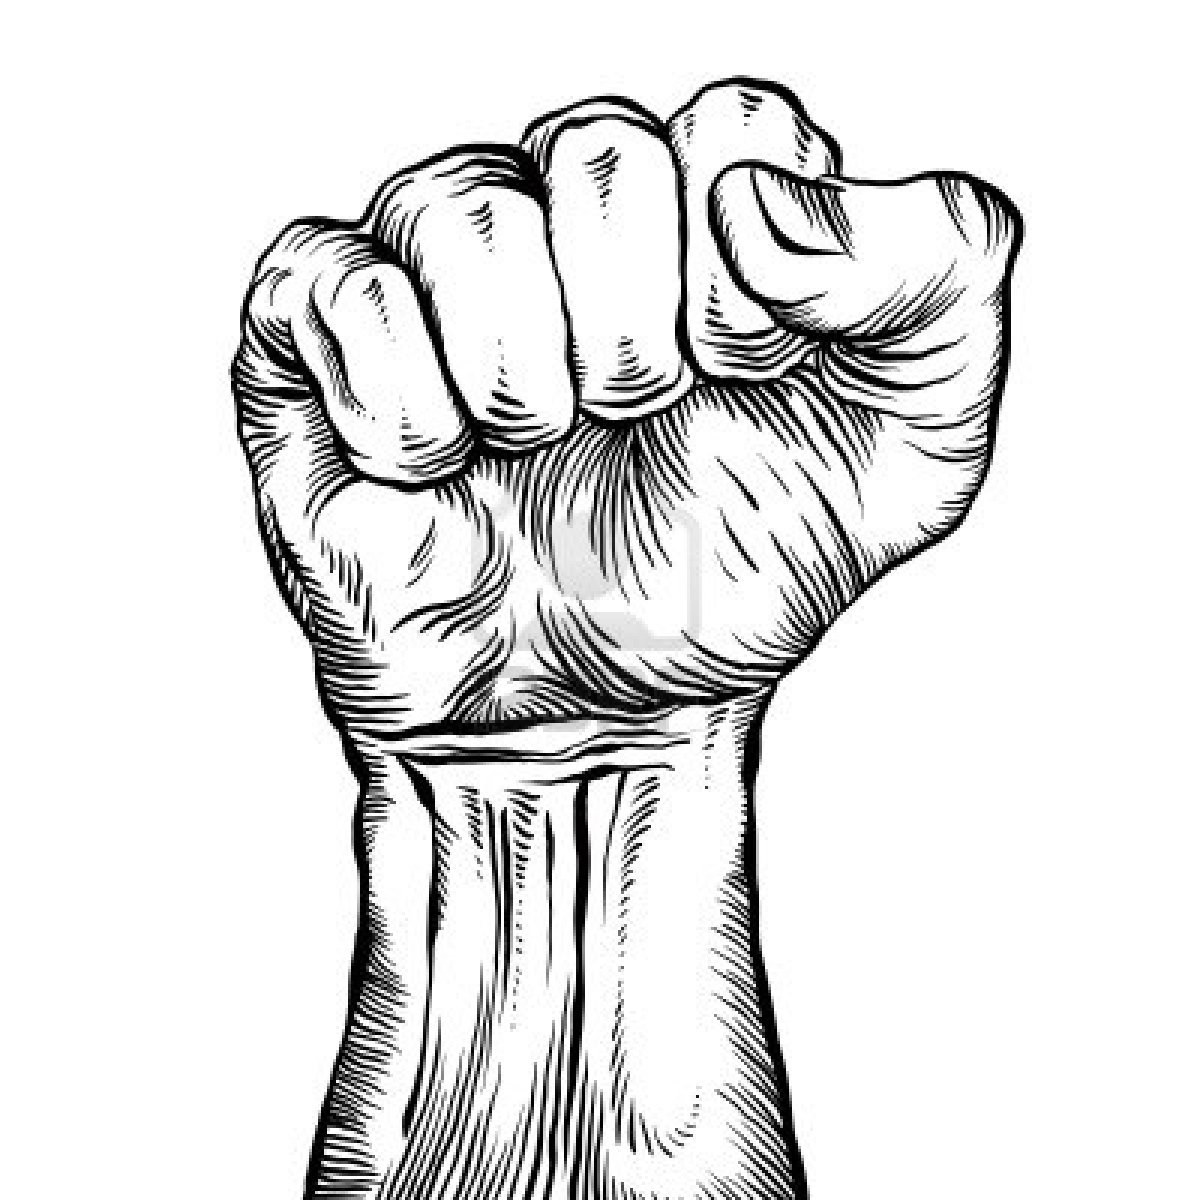 Clenched fist clipart.